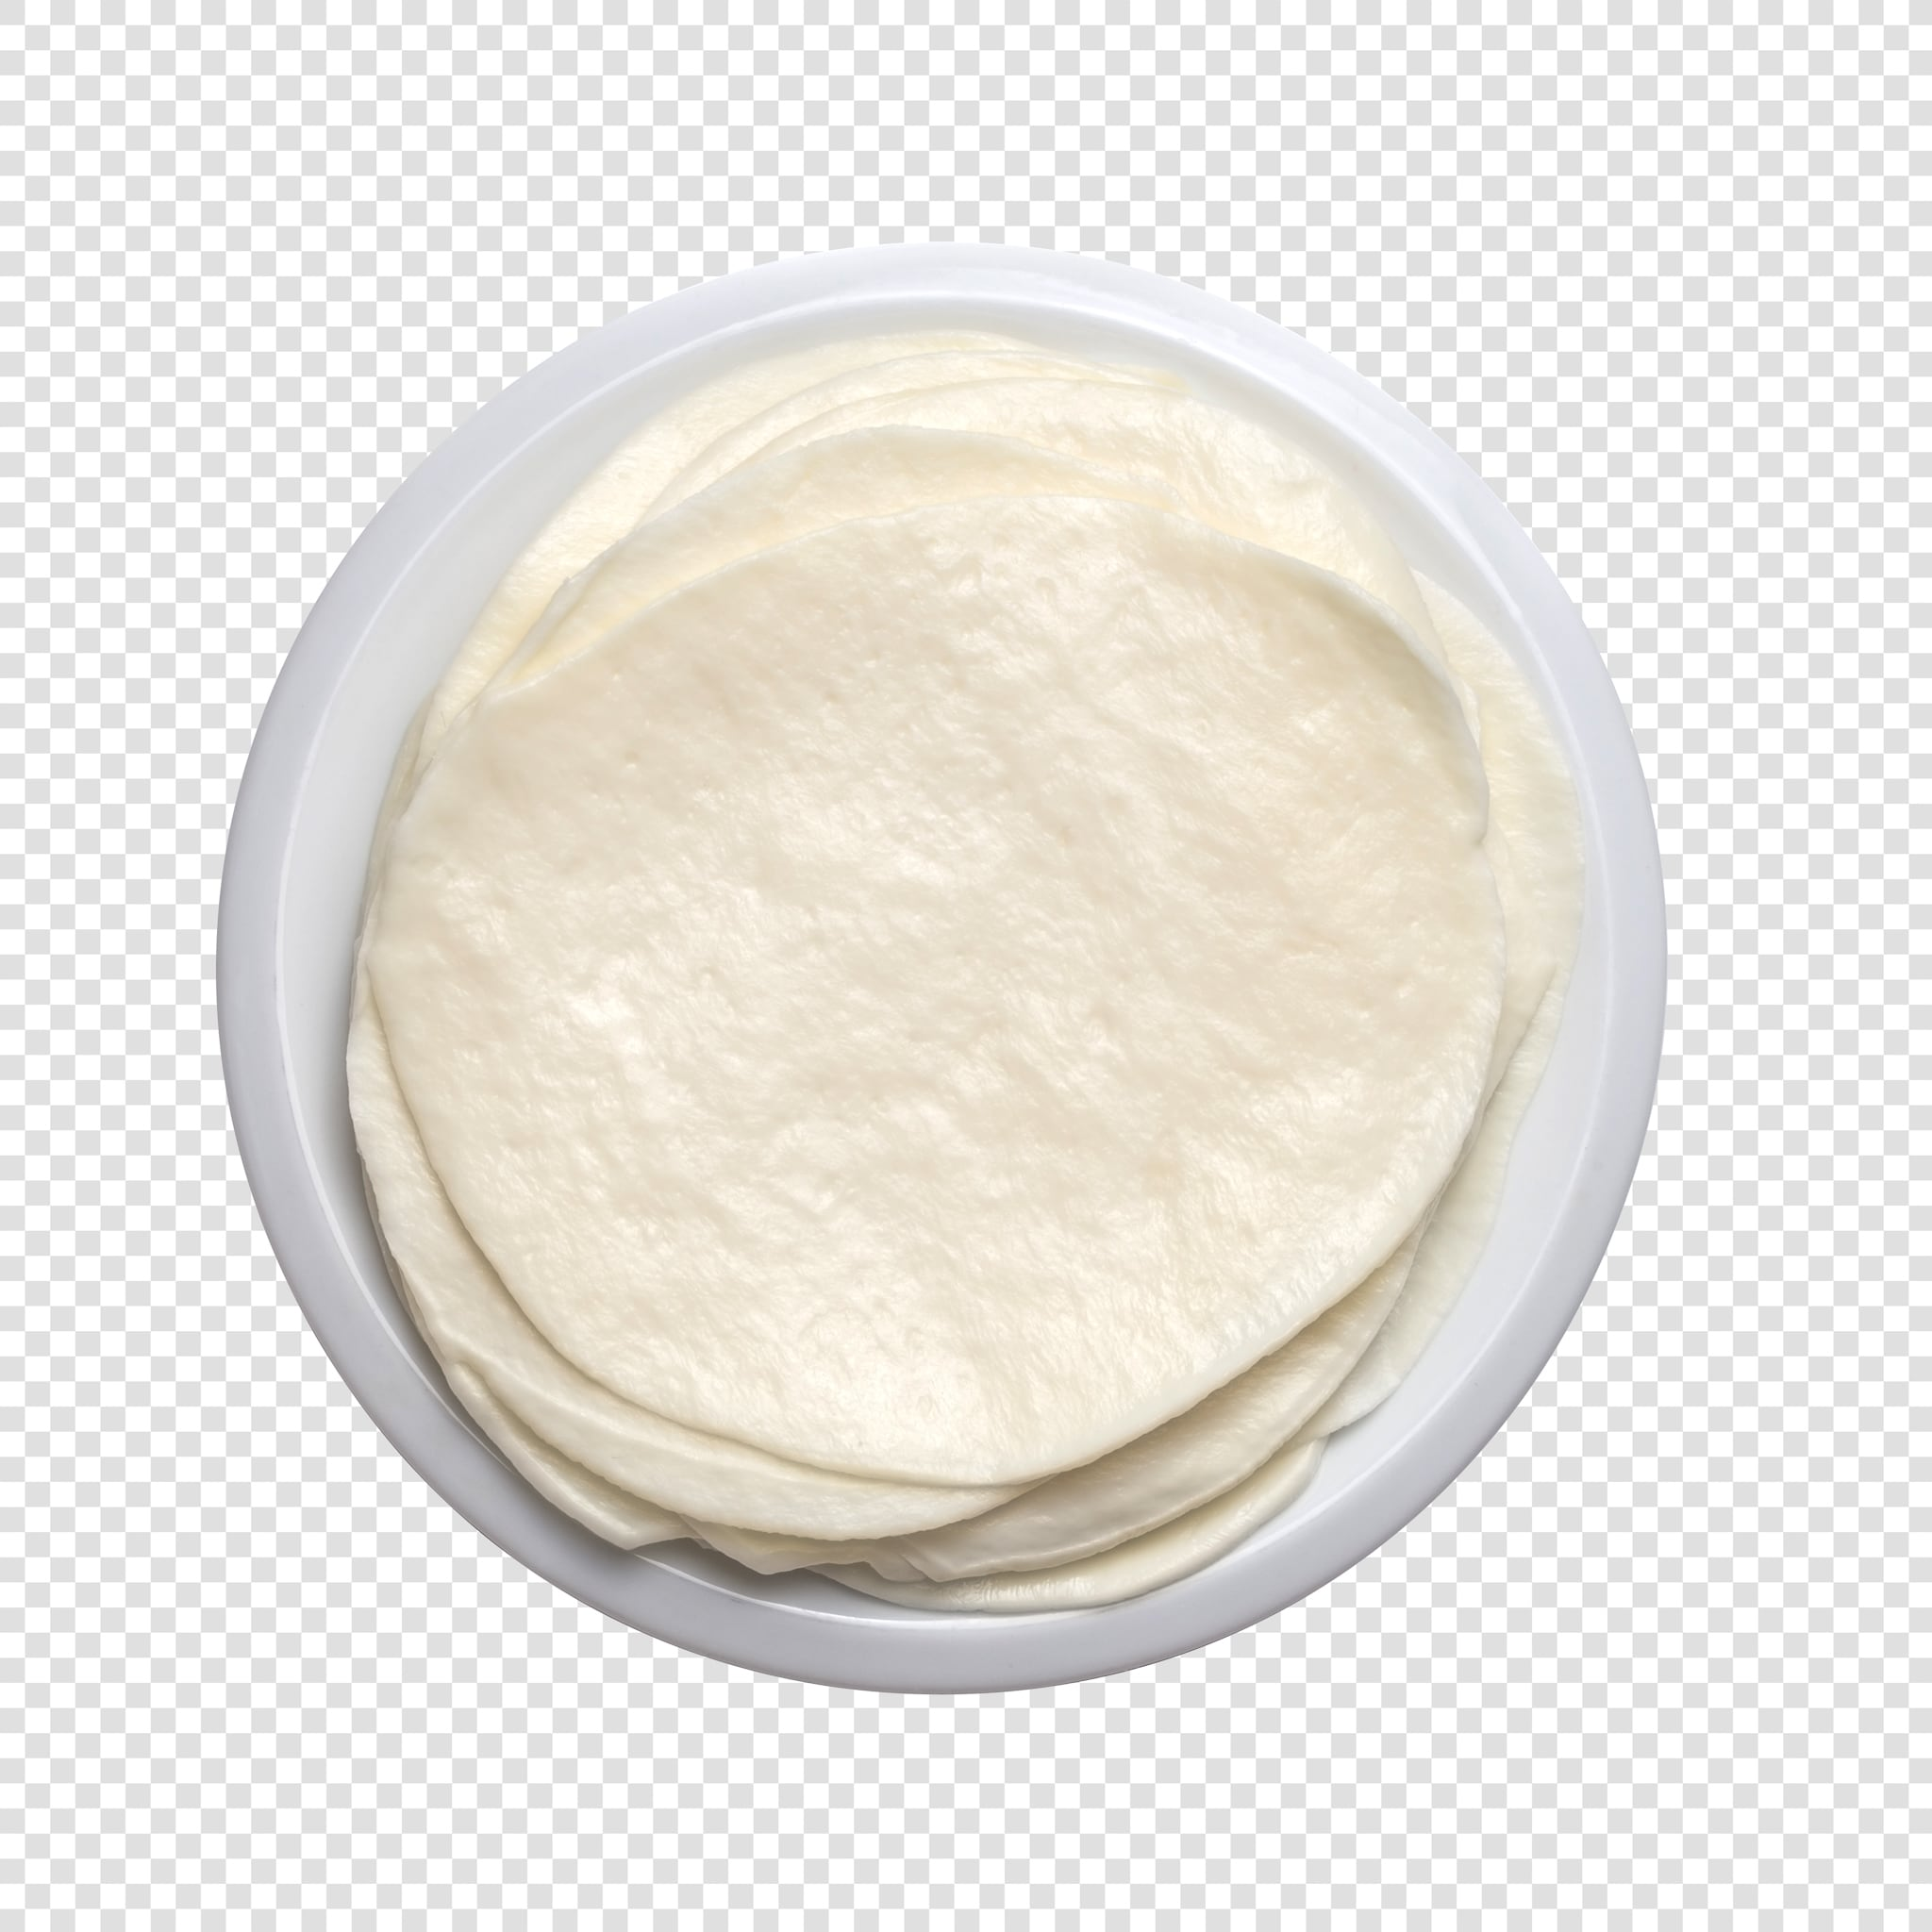 Cheese PSD isolated image